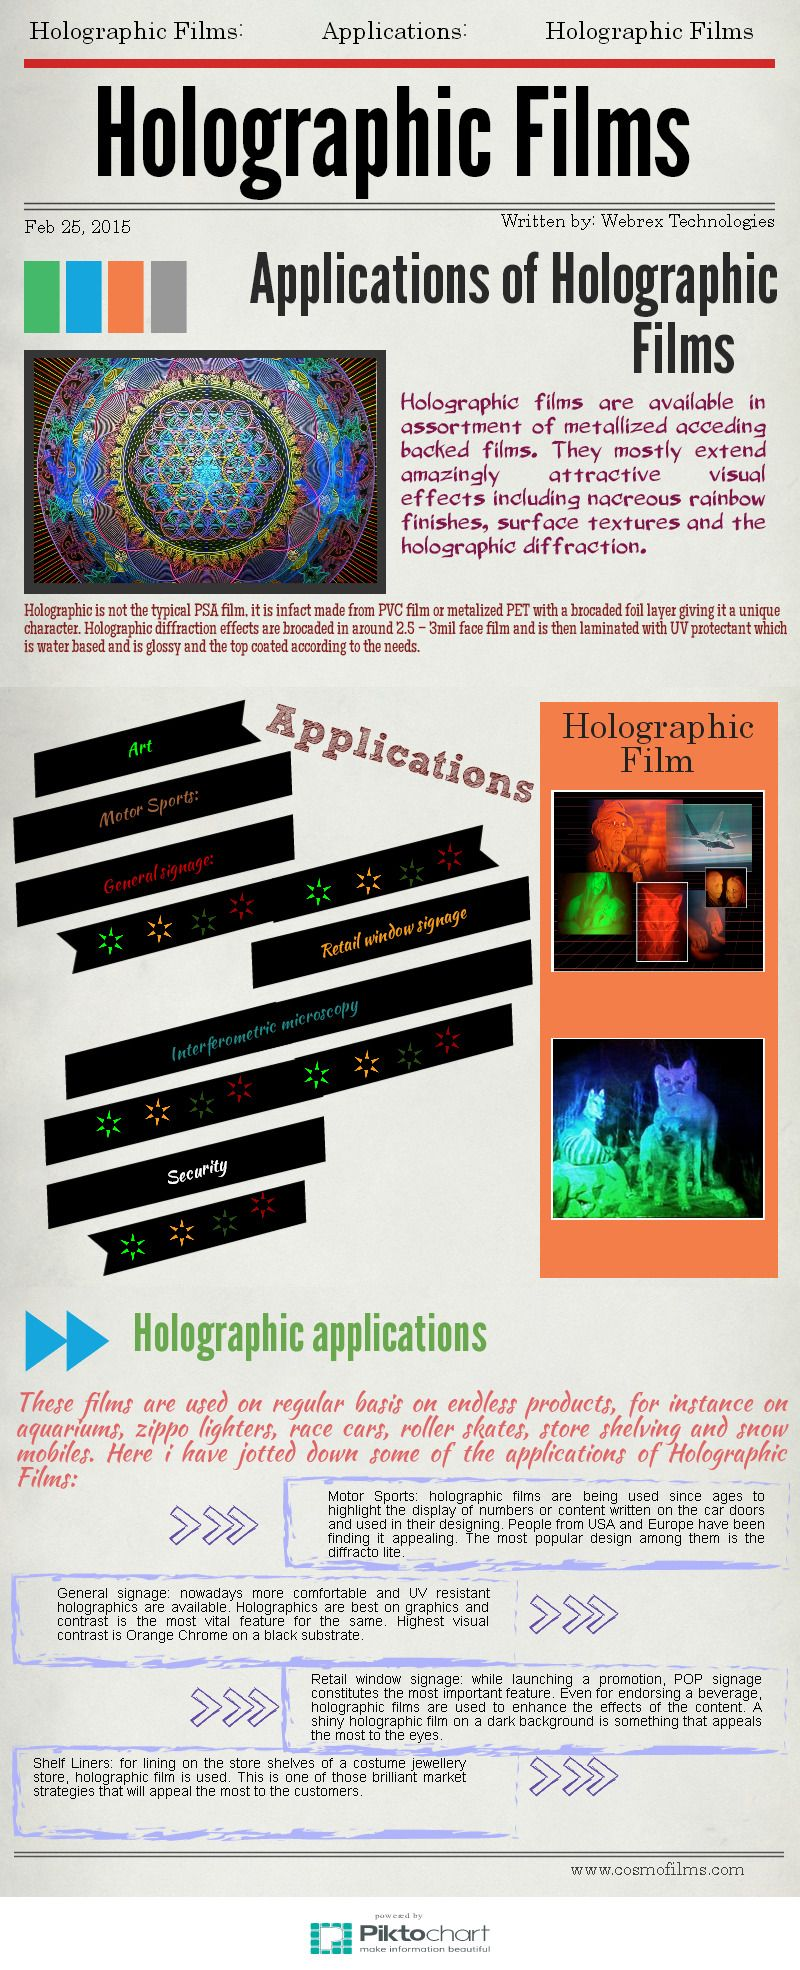 Holographic films are available in assortment of metallized acceding backed films. They mostly extend amazingly attractive visual effects including nacreous rainbow finishes, surface textures and the holographic diffraction.